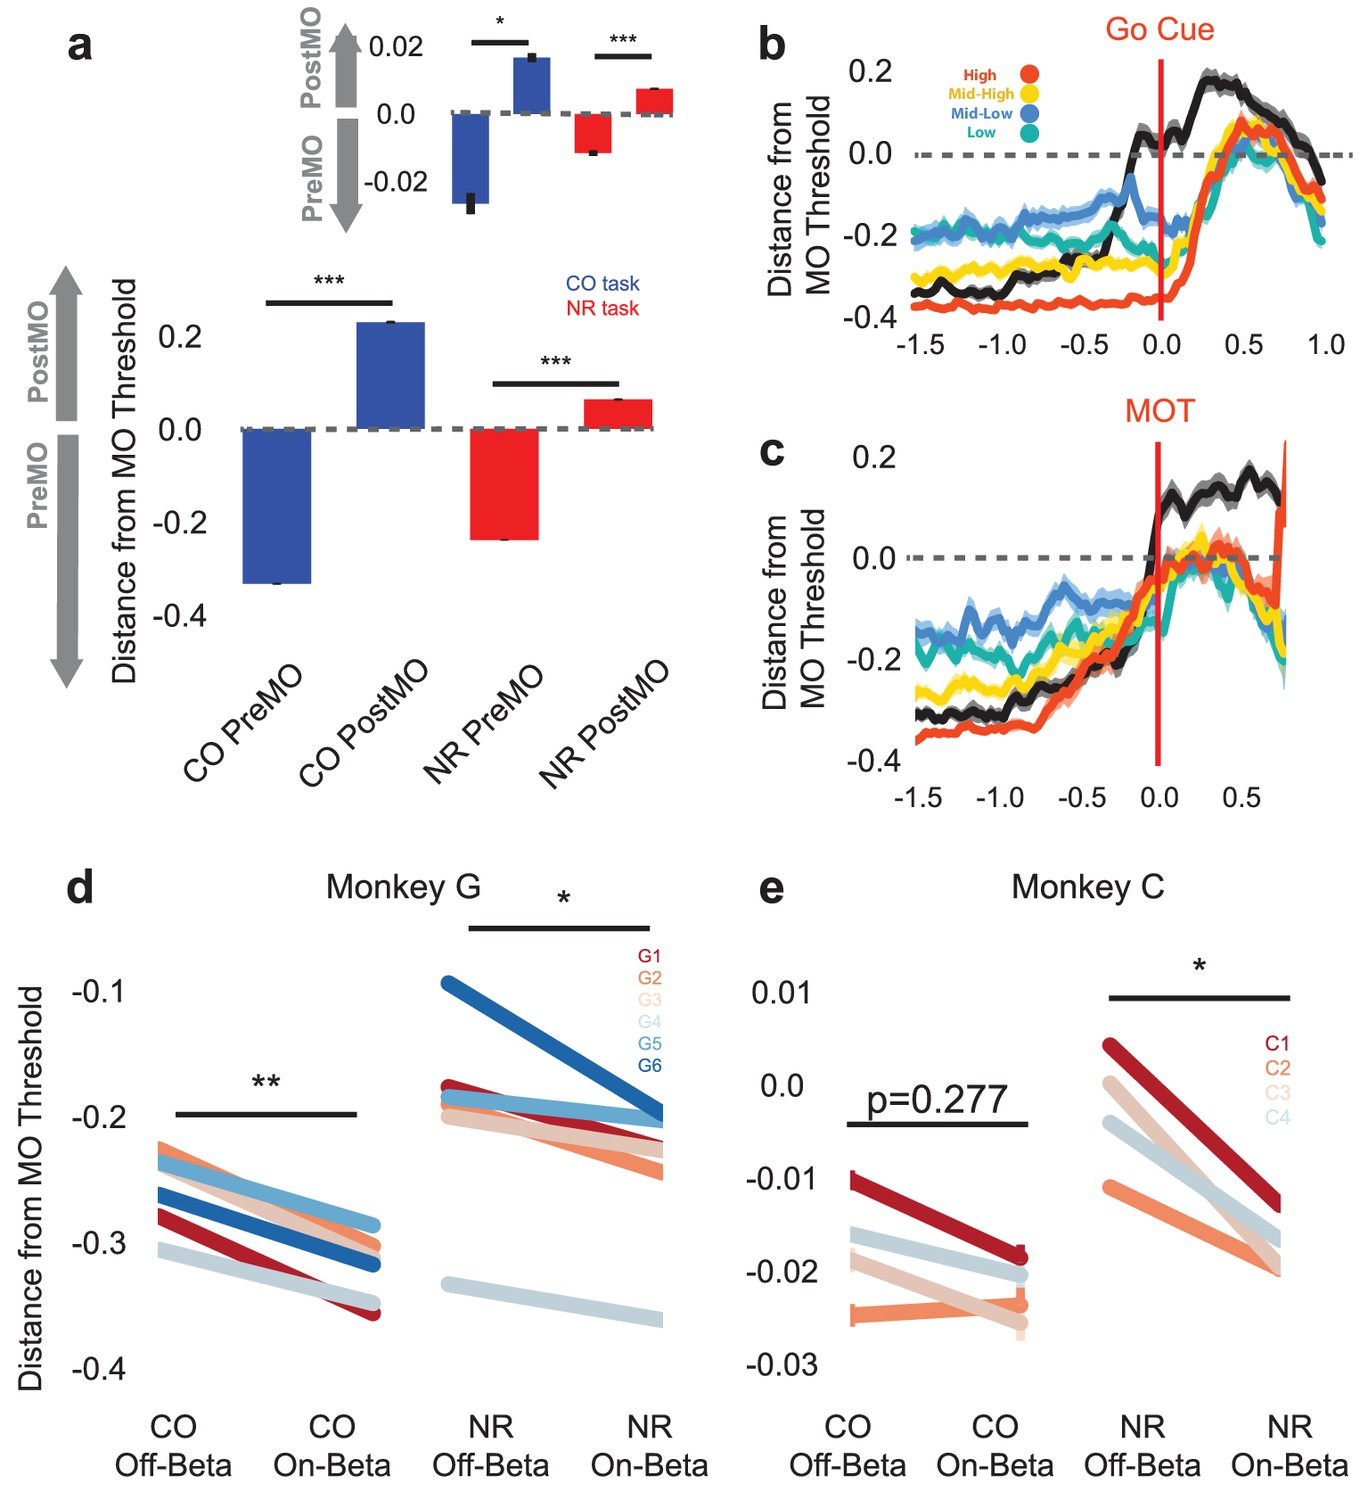 Beta Band Oscillations In Motor Cortex Reflect Neural Population Simulated Neuroprosthesis State Activation And Handposition Control Activity Shifts Away From Mo Threshold During On Timepoints Both The Co Nr Tasks